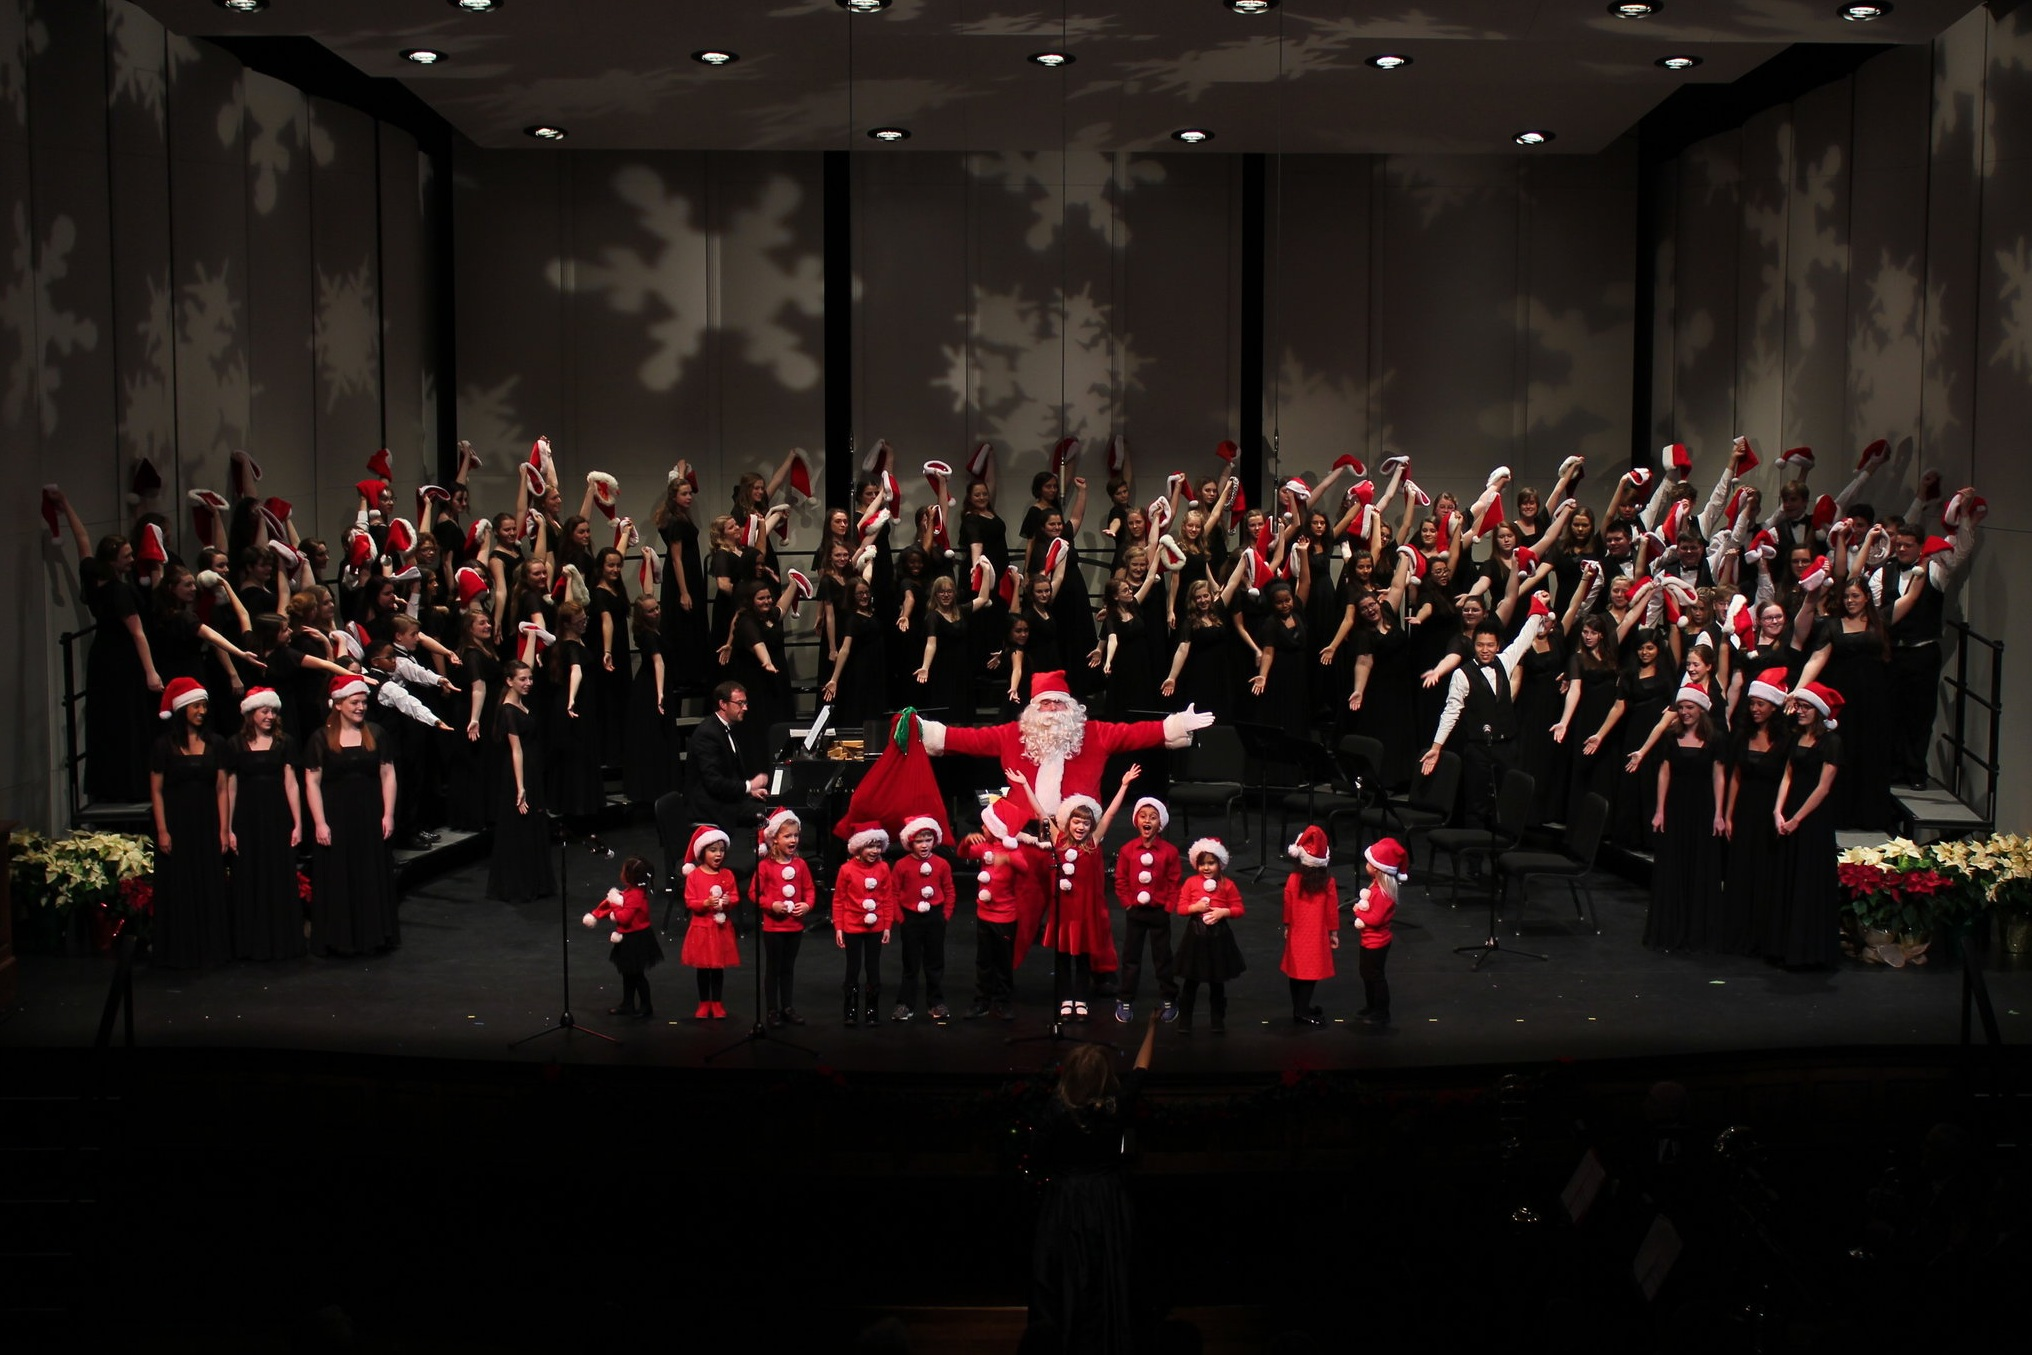 2019 Holiday Concert - Sunday, December 8th at 1:30 and 4:00 PM at Shaftman Performance Hall at the Jefferson Center in Roanoke, VA.This is the 33rd Annual Holiday Concert of the Roanoke Valley Children's Choir!Children ages 8-18 work all semester to become one beautiful voice in this annual Holiday Concert. They put on a show!Repertoire will include traditional, classical and lighthearted holiday music.